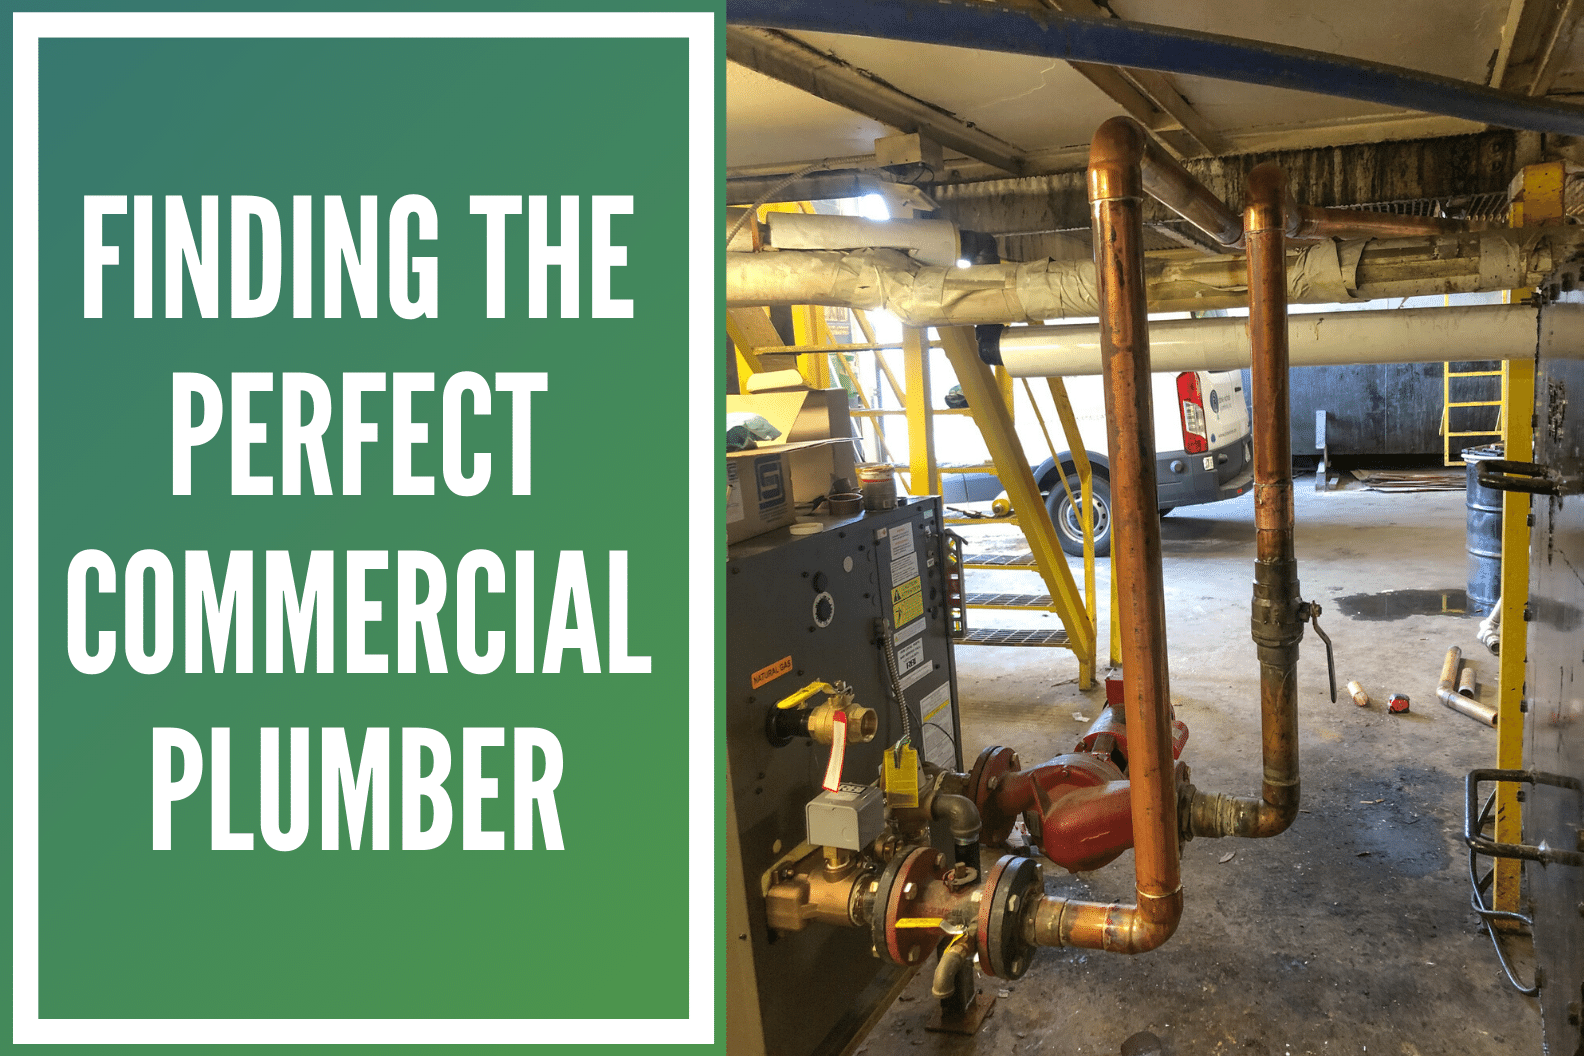 Finding the Perfect Commercial Plumbing Company